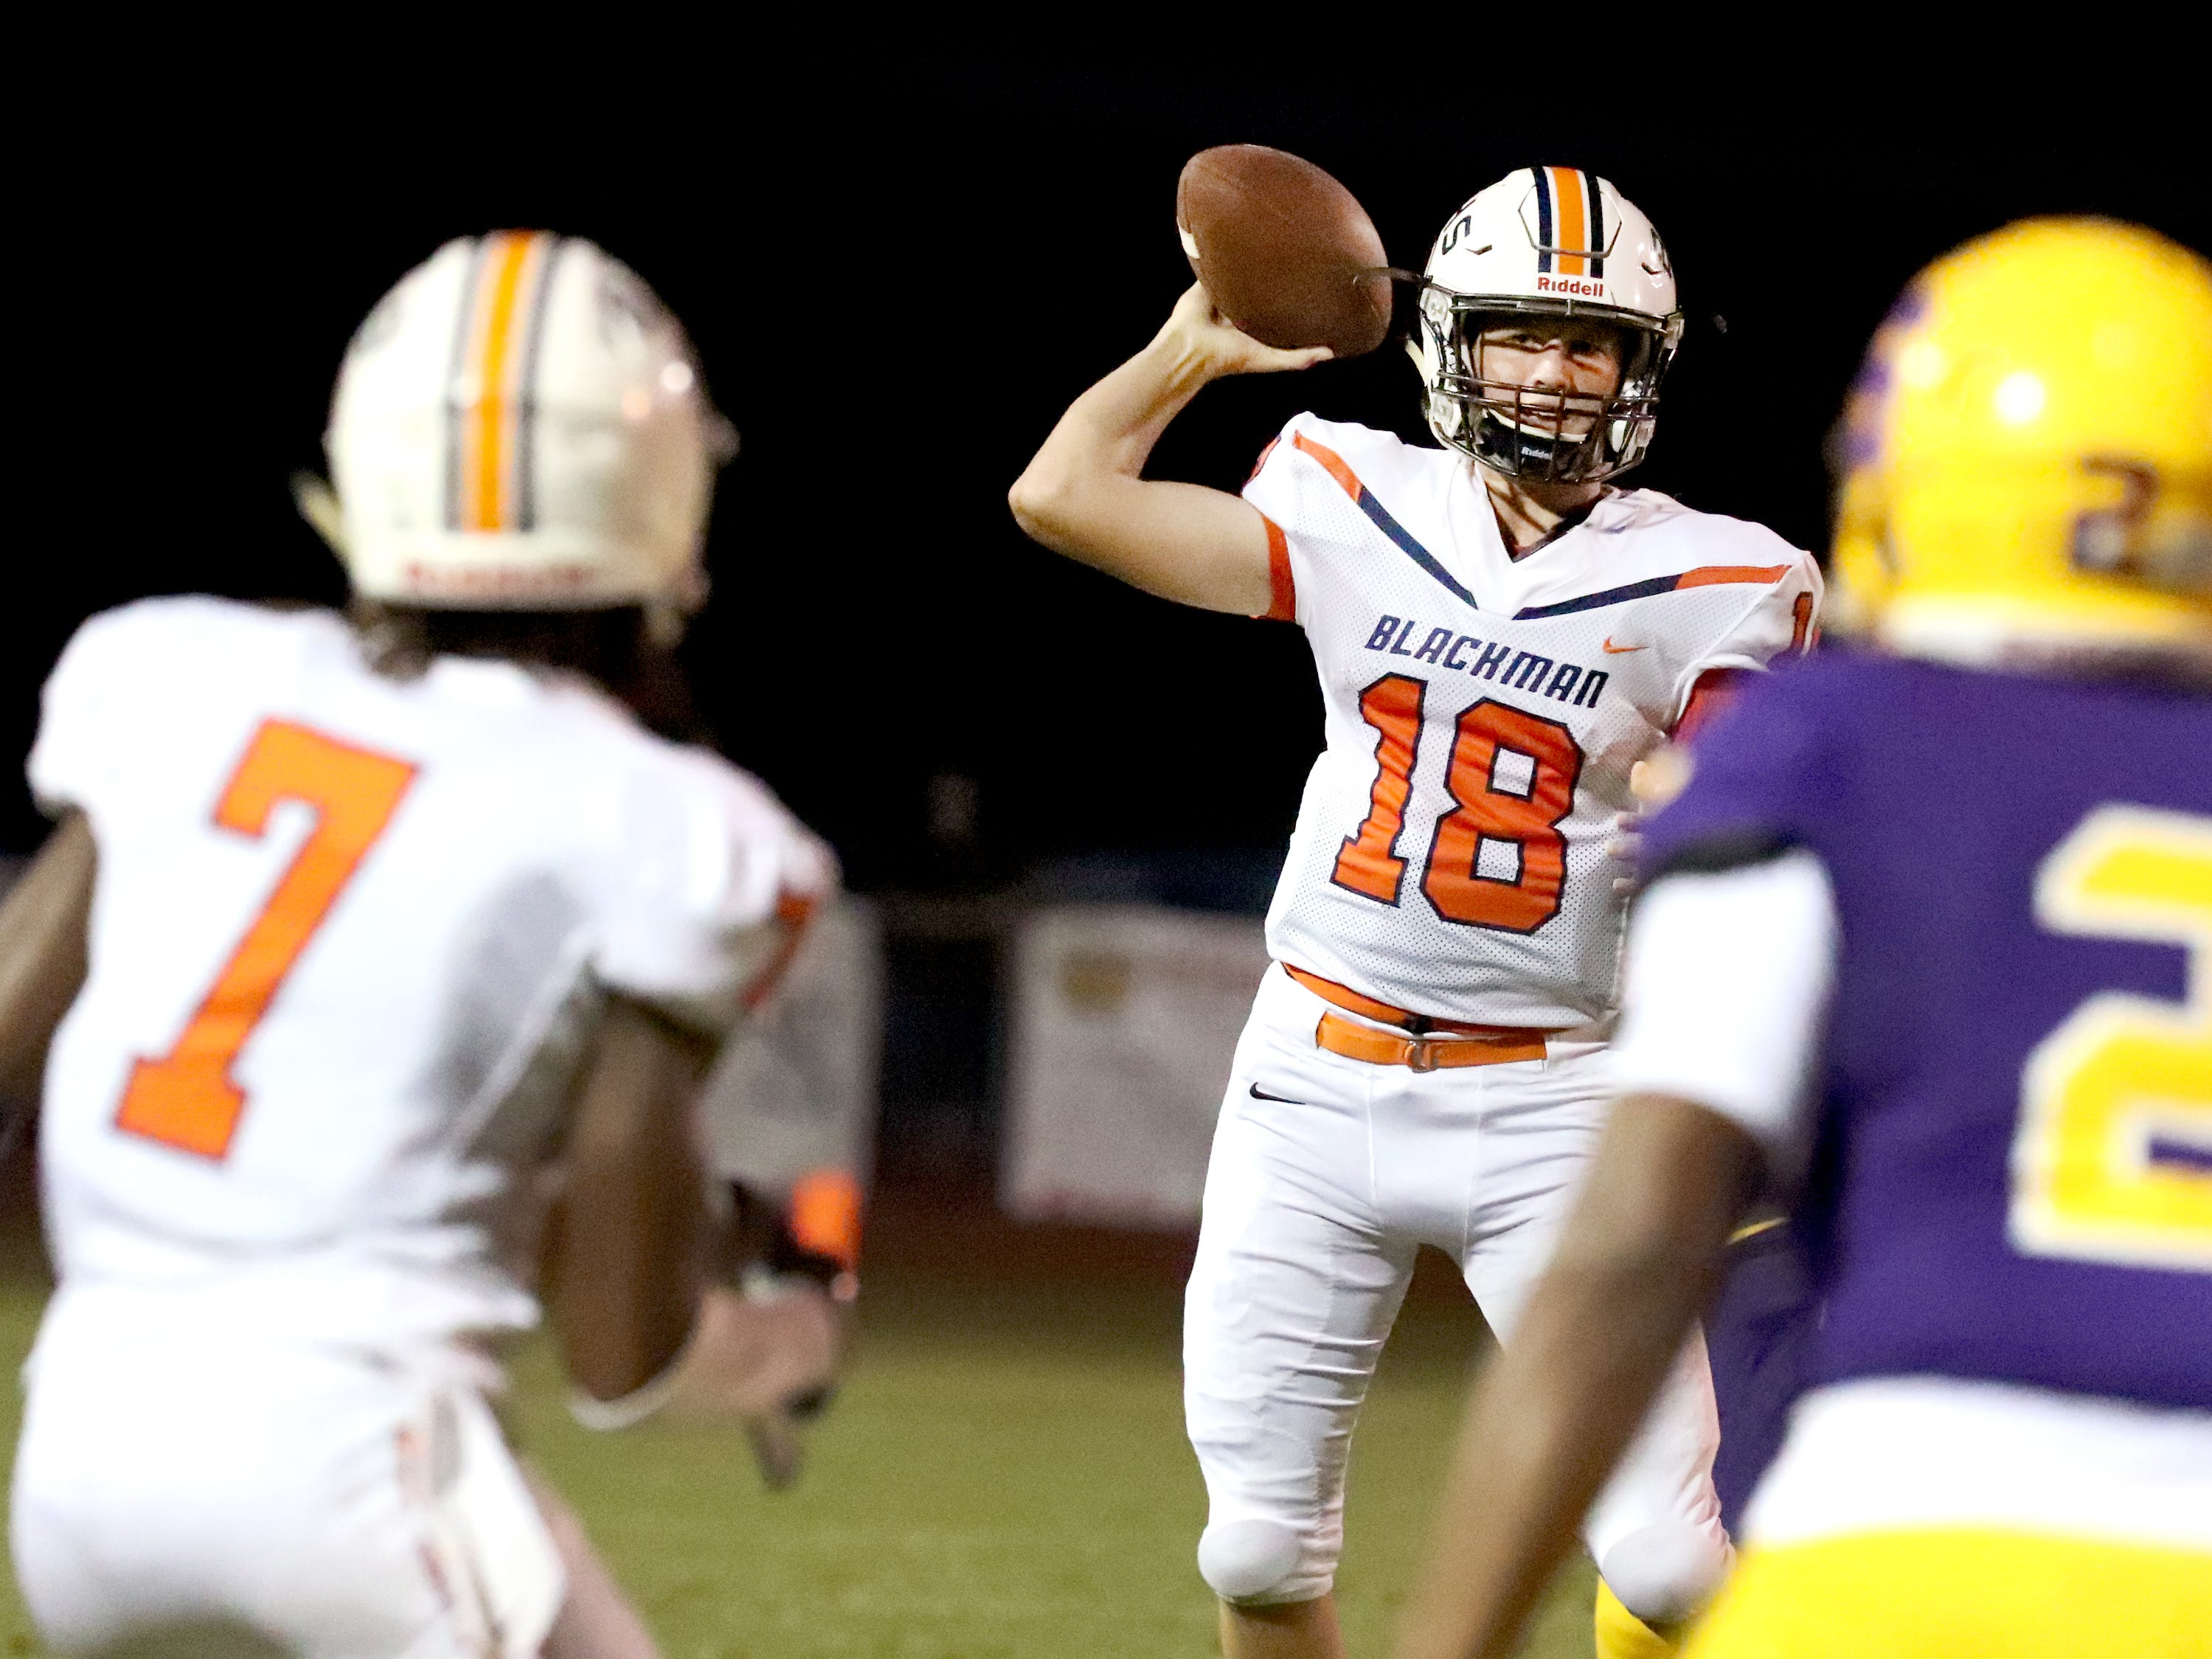 Blackman's quarterback Drew Beam (18) attempts to pass the ball to Michaleous Elder (7) in the first half of the game against Smyrna at Smyrna High School on Friday, Sept. 7, 2018.